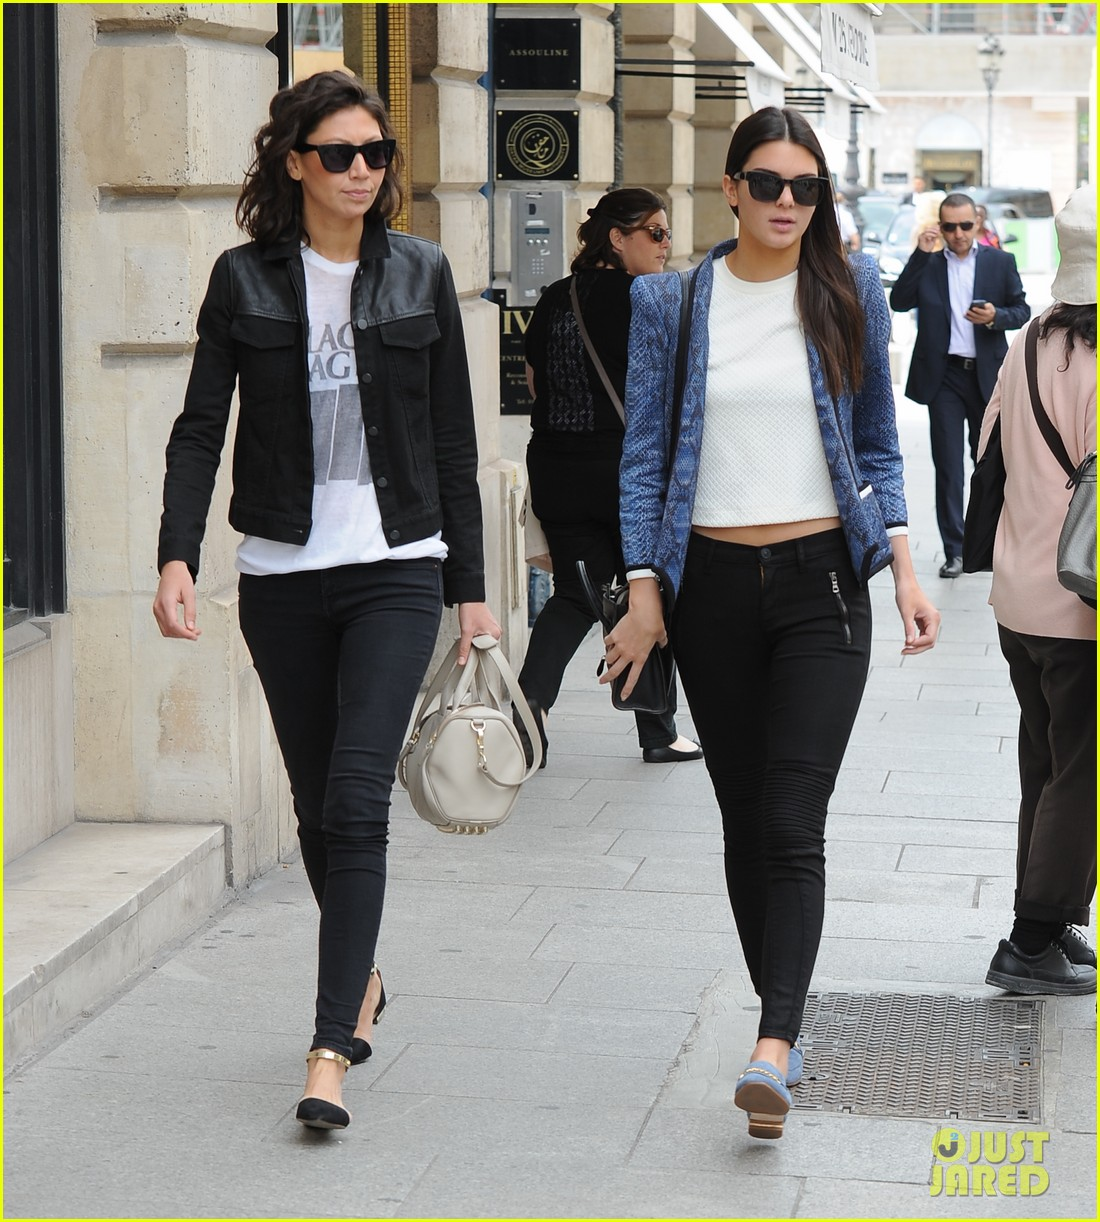 kendall jenner jets paris after hamptons getaway 073150877